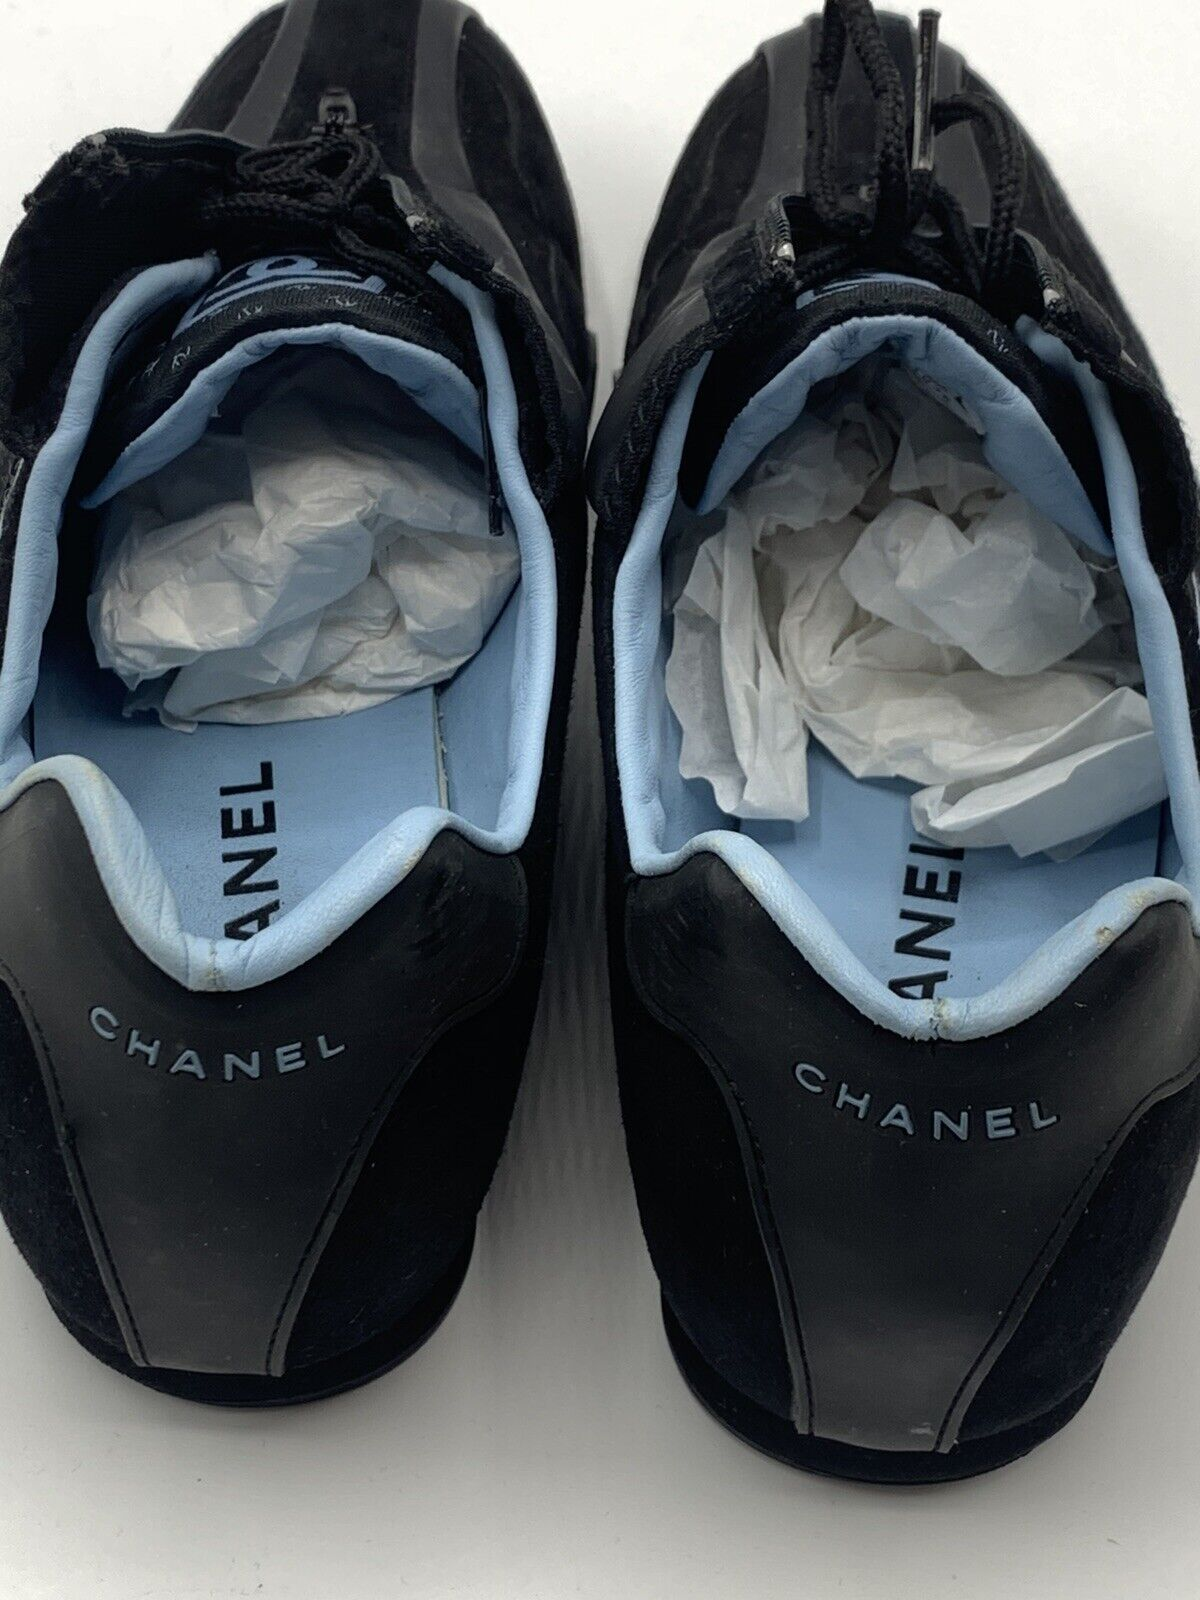 Chanel Sneakers - image 5